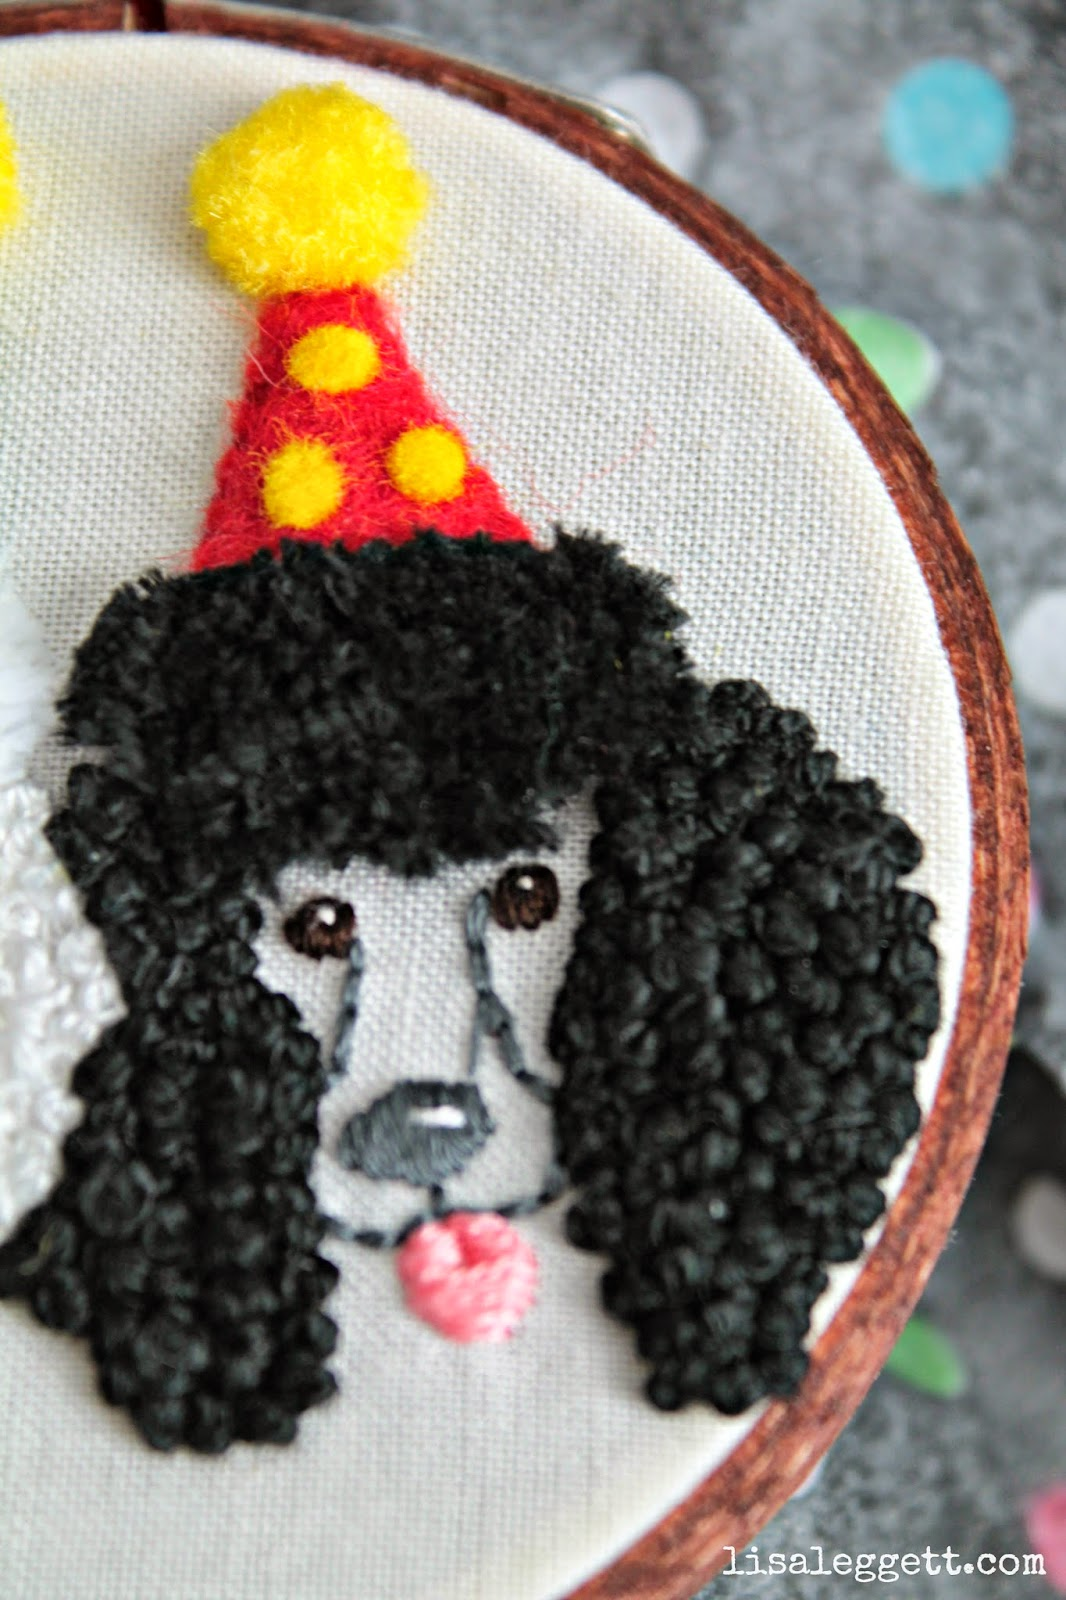 Riley the Party Poodle by Lisa Leggett